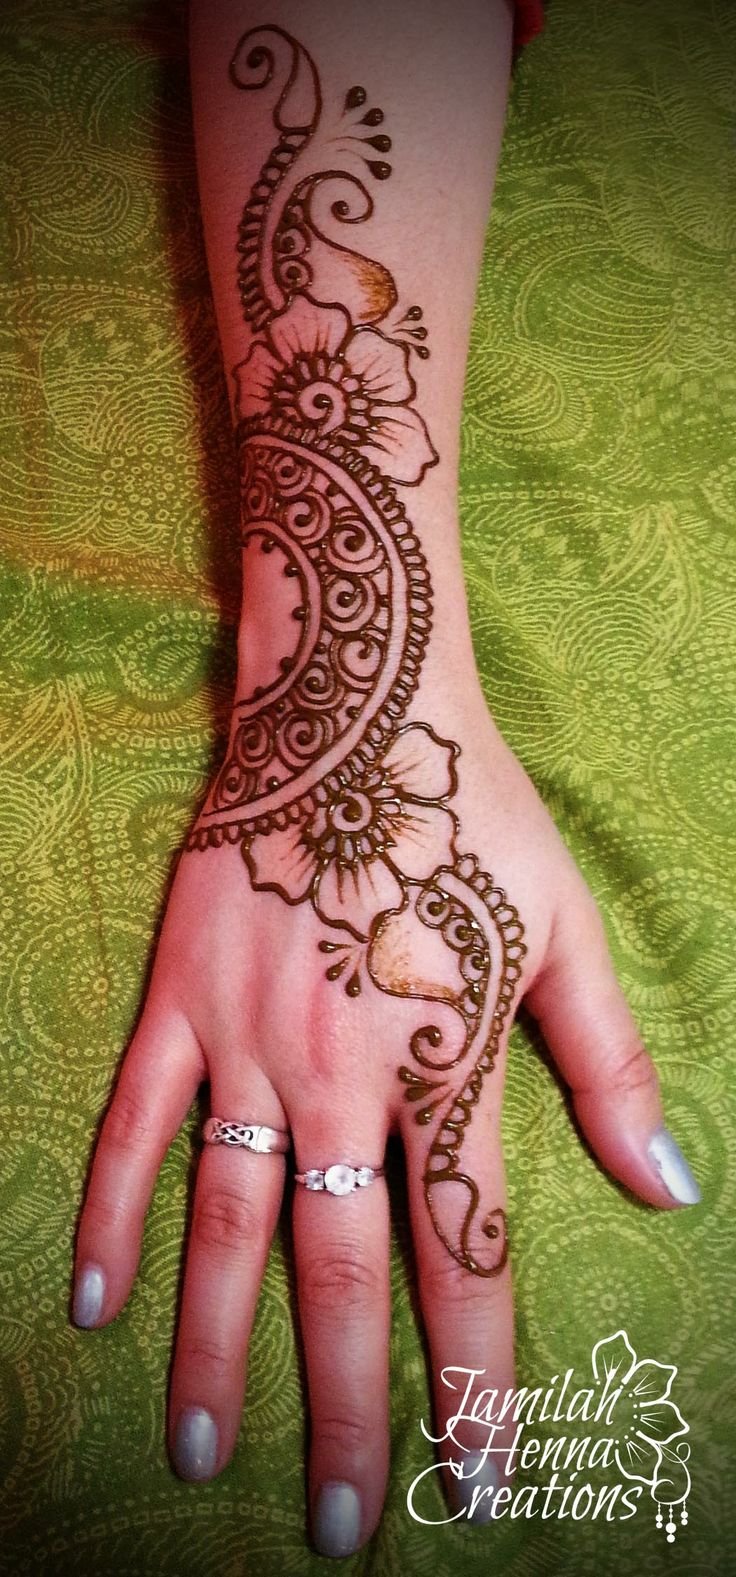 Sangeet henna strip www.JamilahHennaCreations.com